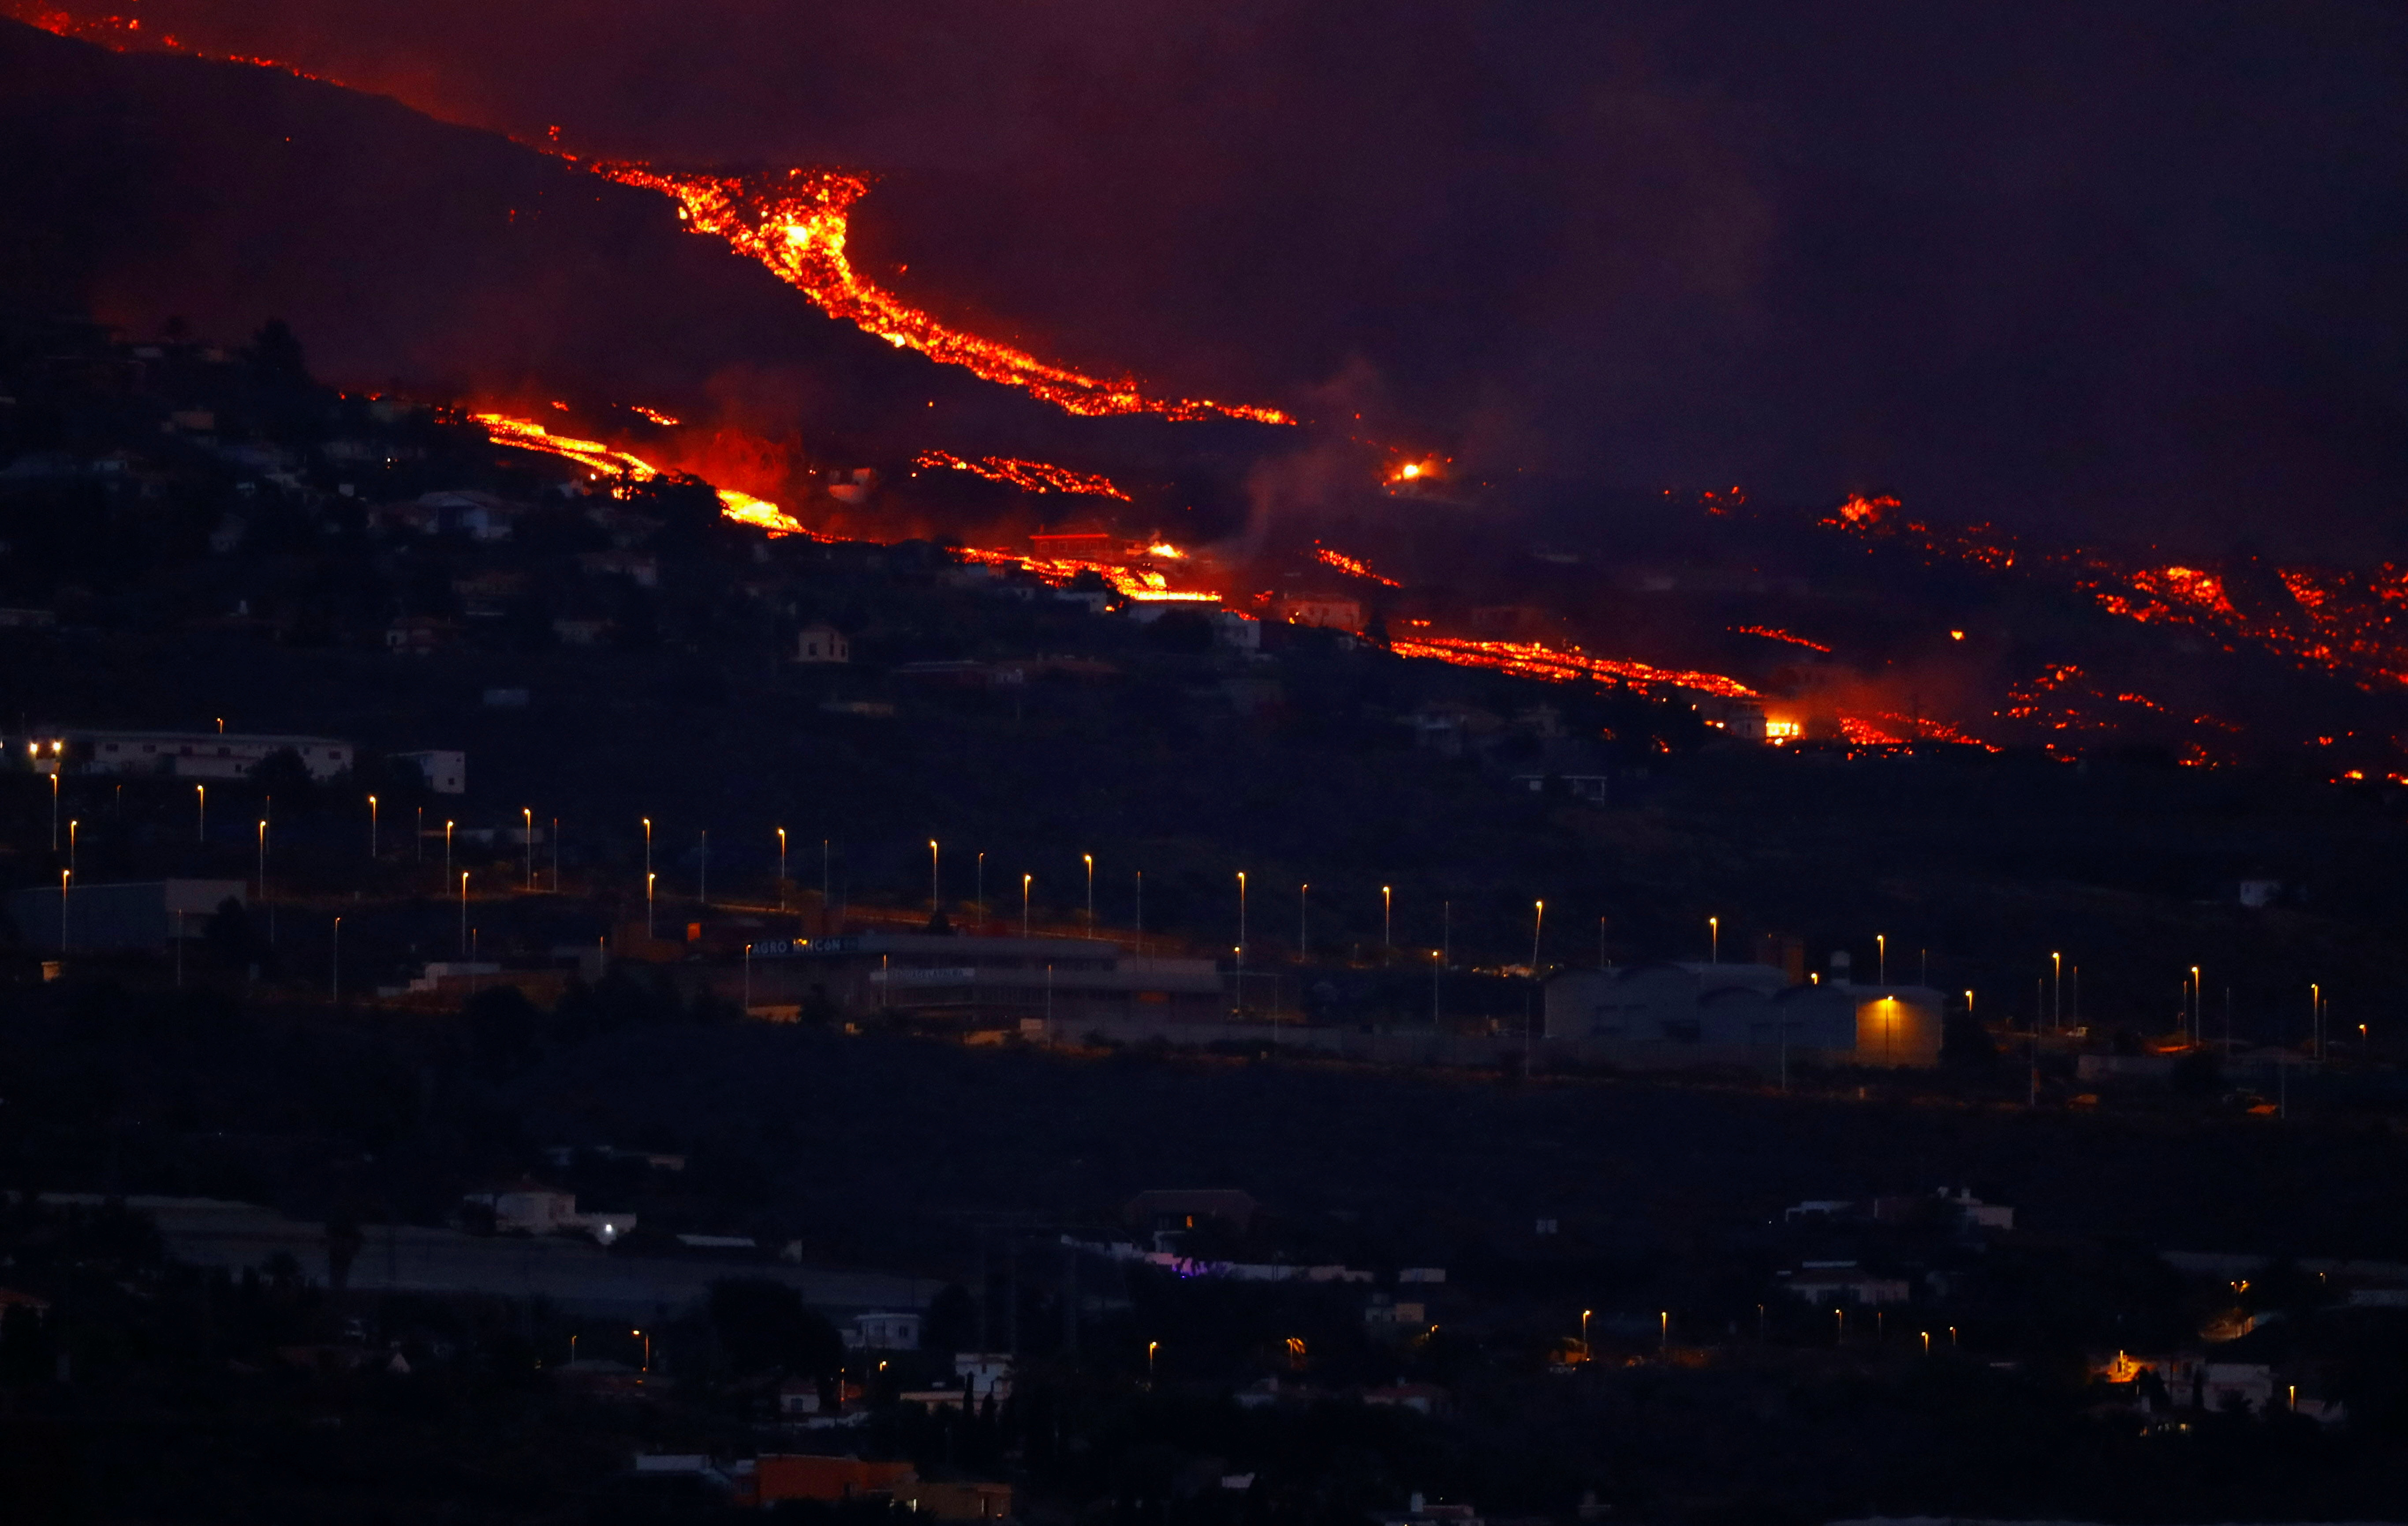 Lava flows behind houses following the eruption of a volcano in the Cumbre Vieja national park, in this picture taken from Tazacorte, on the Canary Island of La Palma, September 20, 2021. REUTERS/Borja Suarez